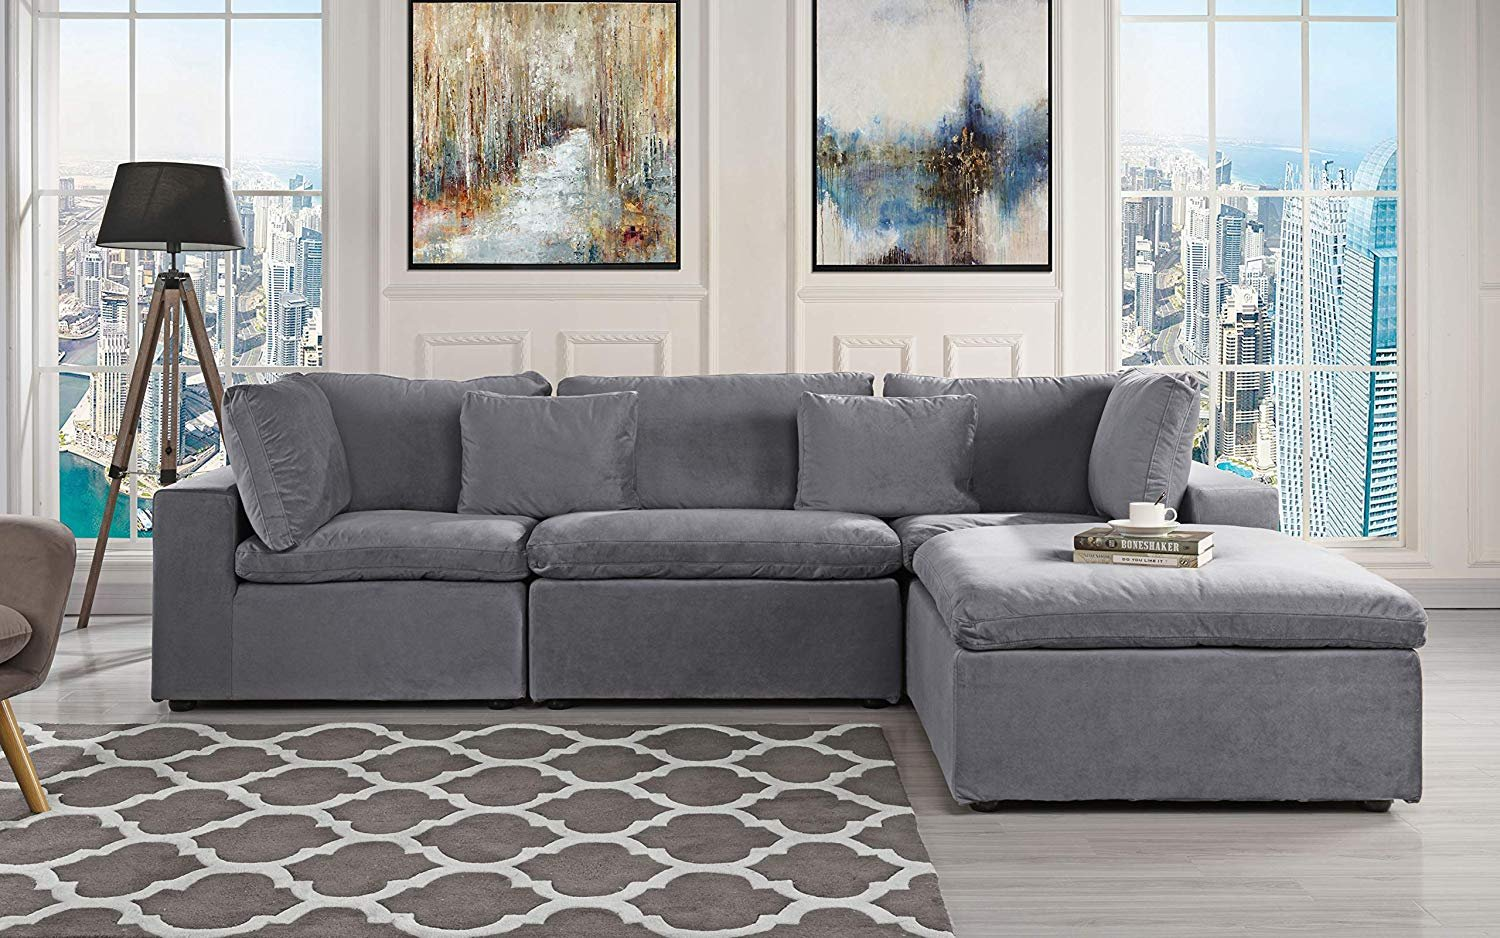 Beau Classic Large Velvet Sectional Sofa, L Shape Couch With Wide Chaise (Dark  Grey)